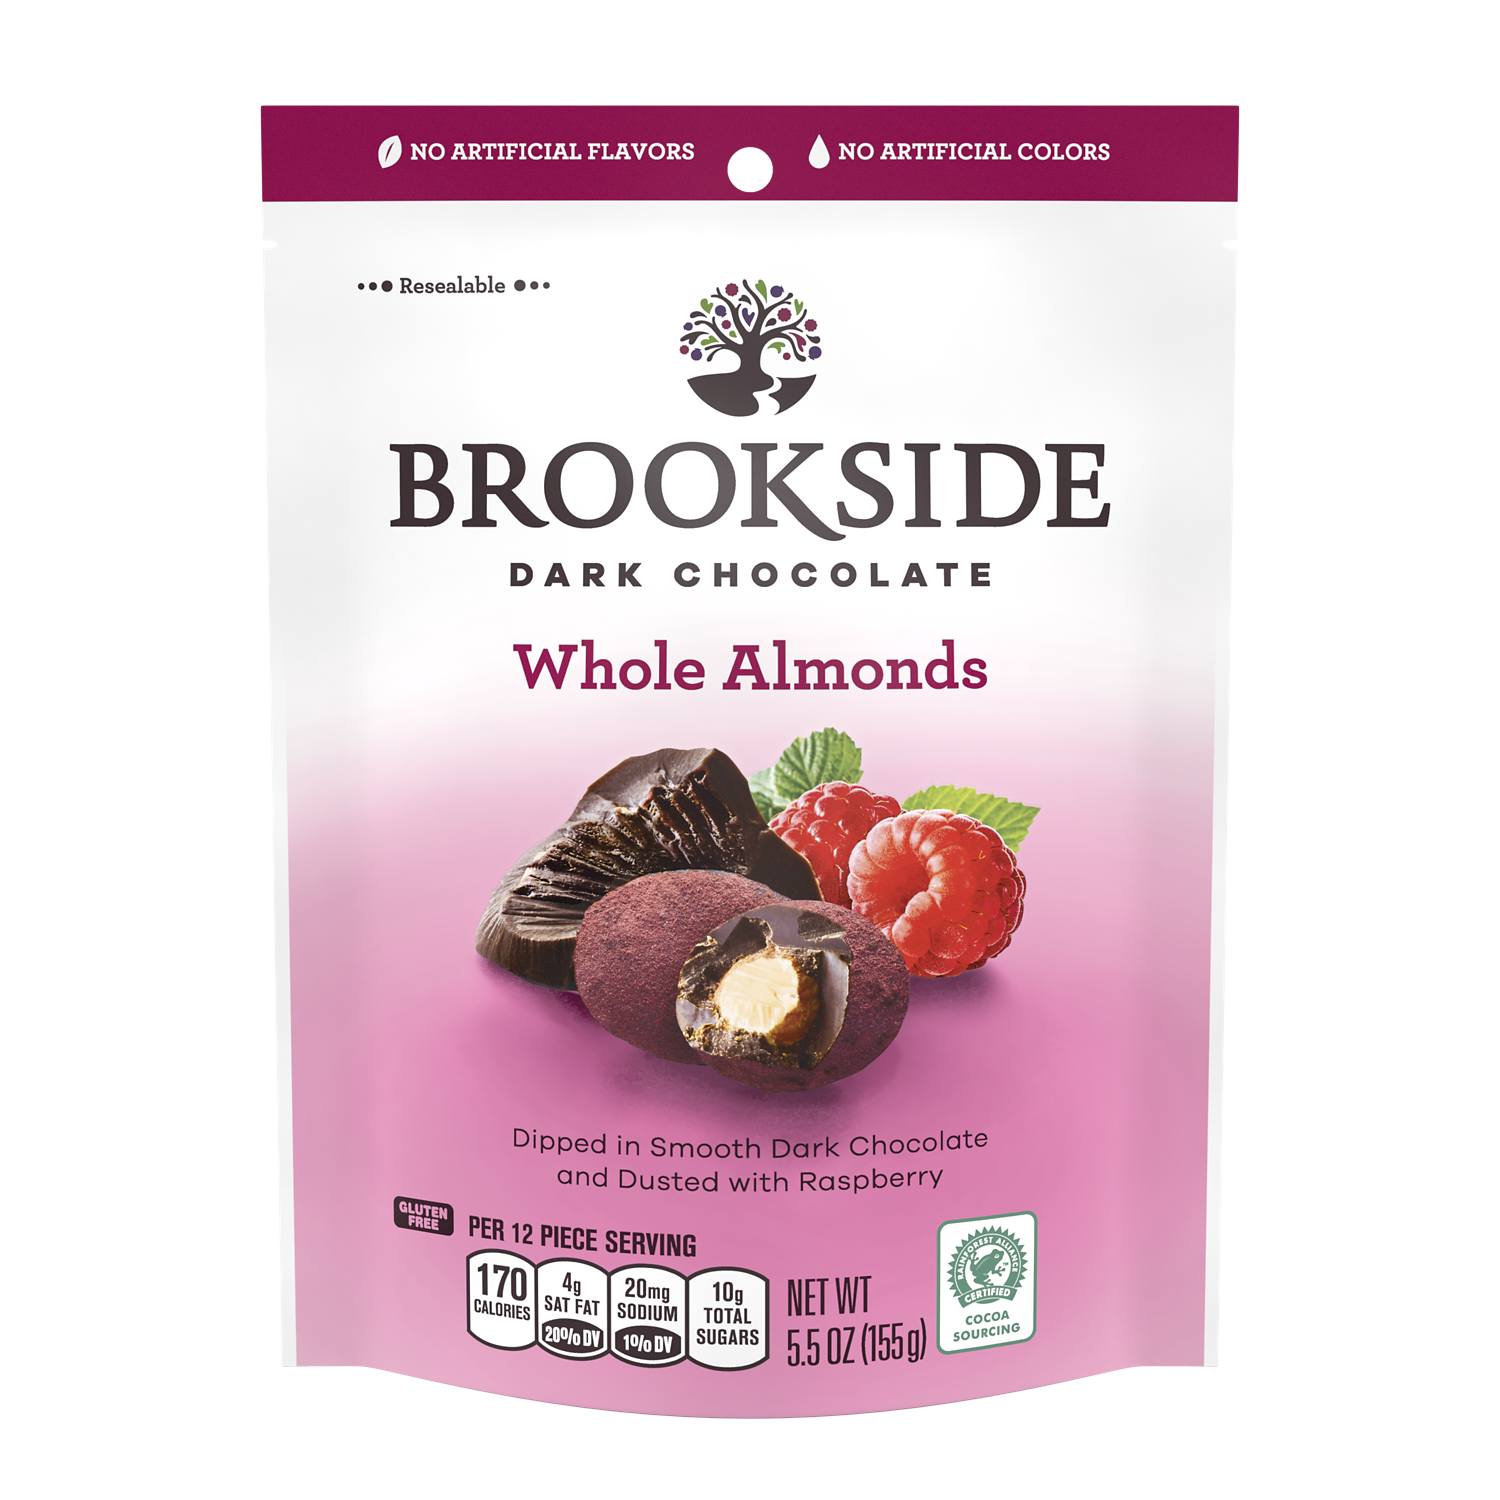 BROOKSIDE Dark Chocolate Whole Almonds Dusted with Raspberry Candy, 5.5 oz bag - Front of Package